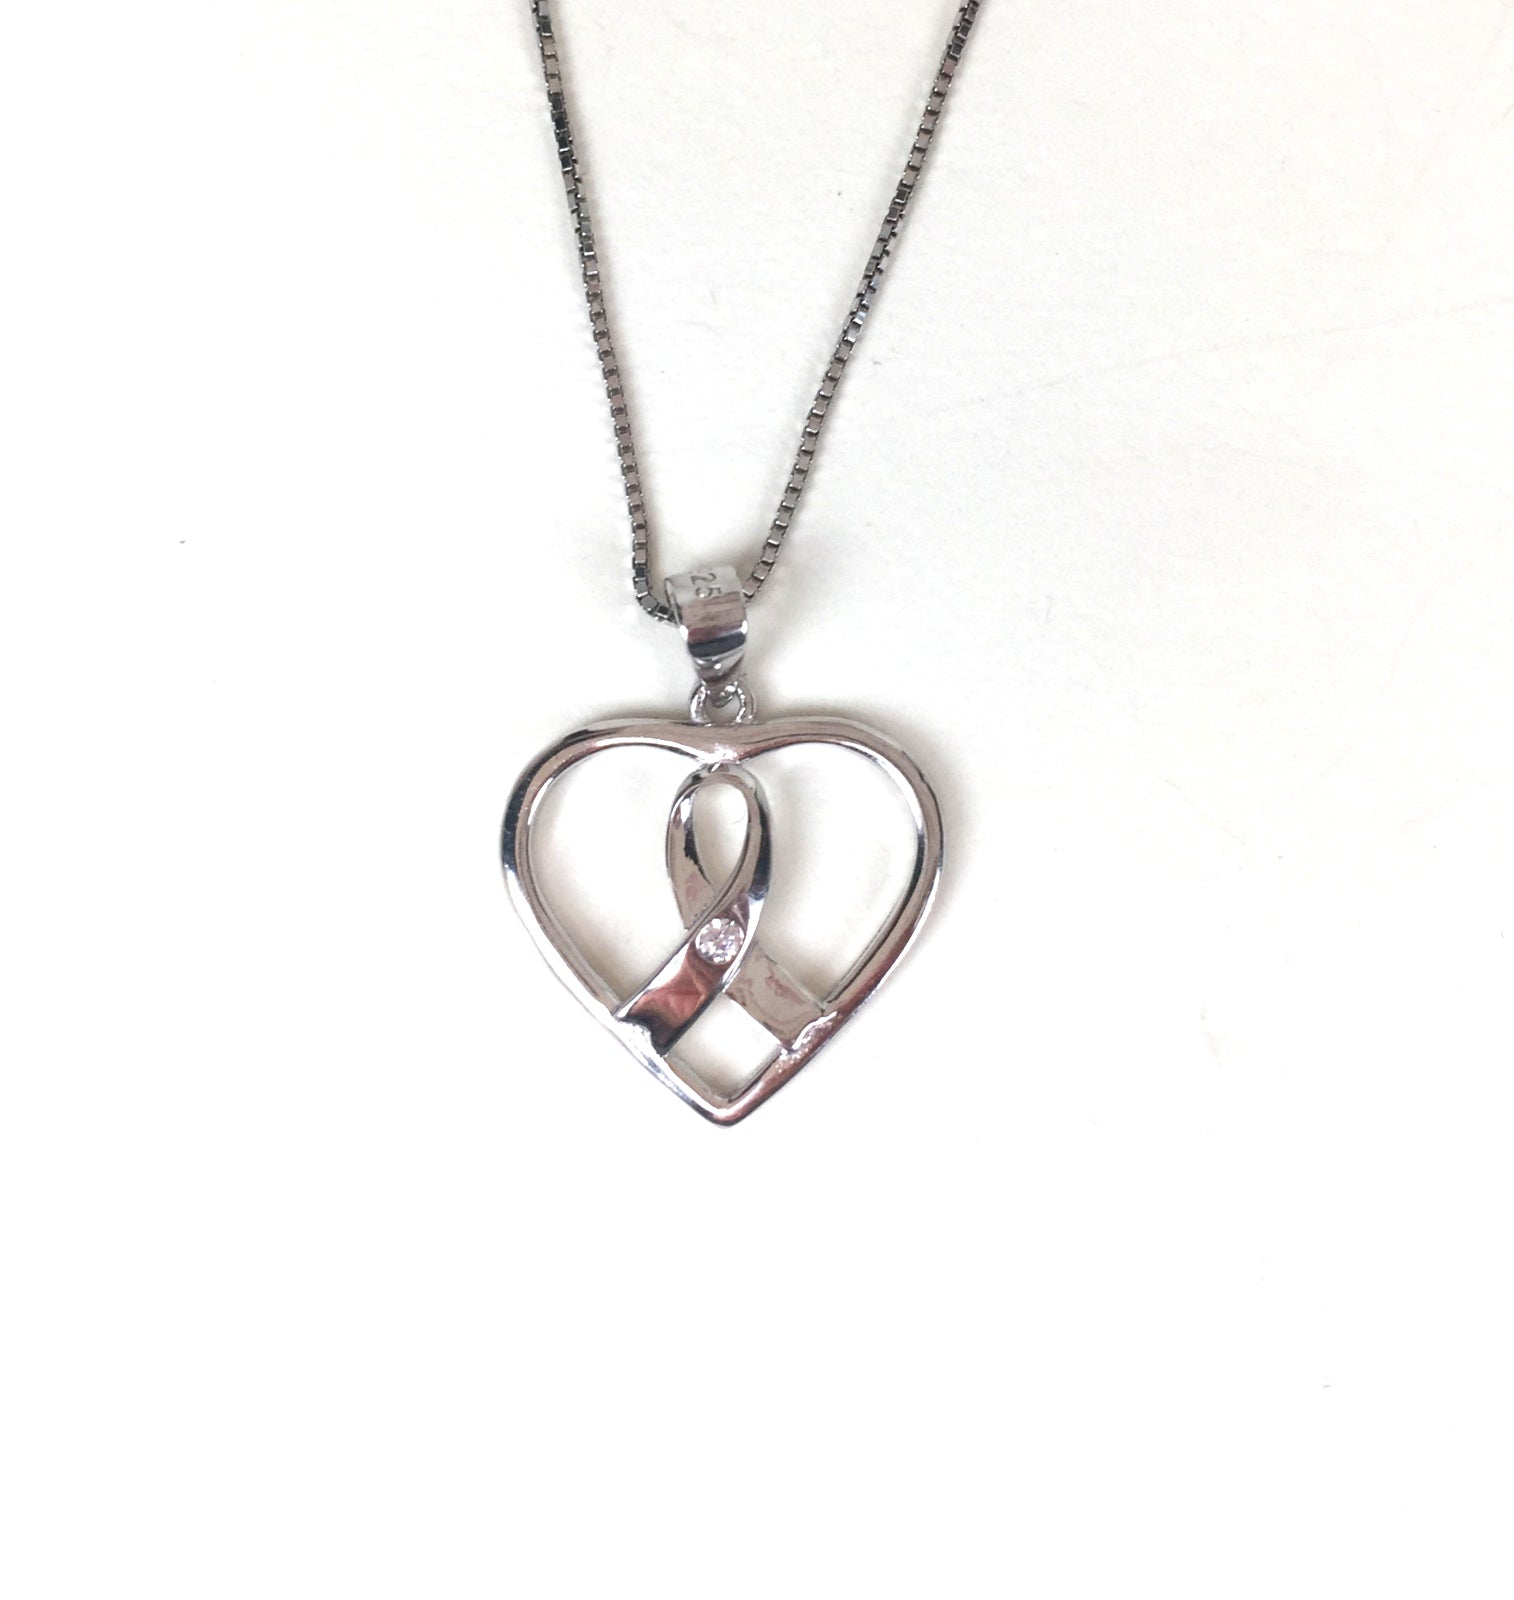 CANCER RIBBON IN HEART STERLING SILVER NECKLACE